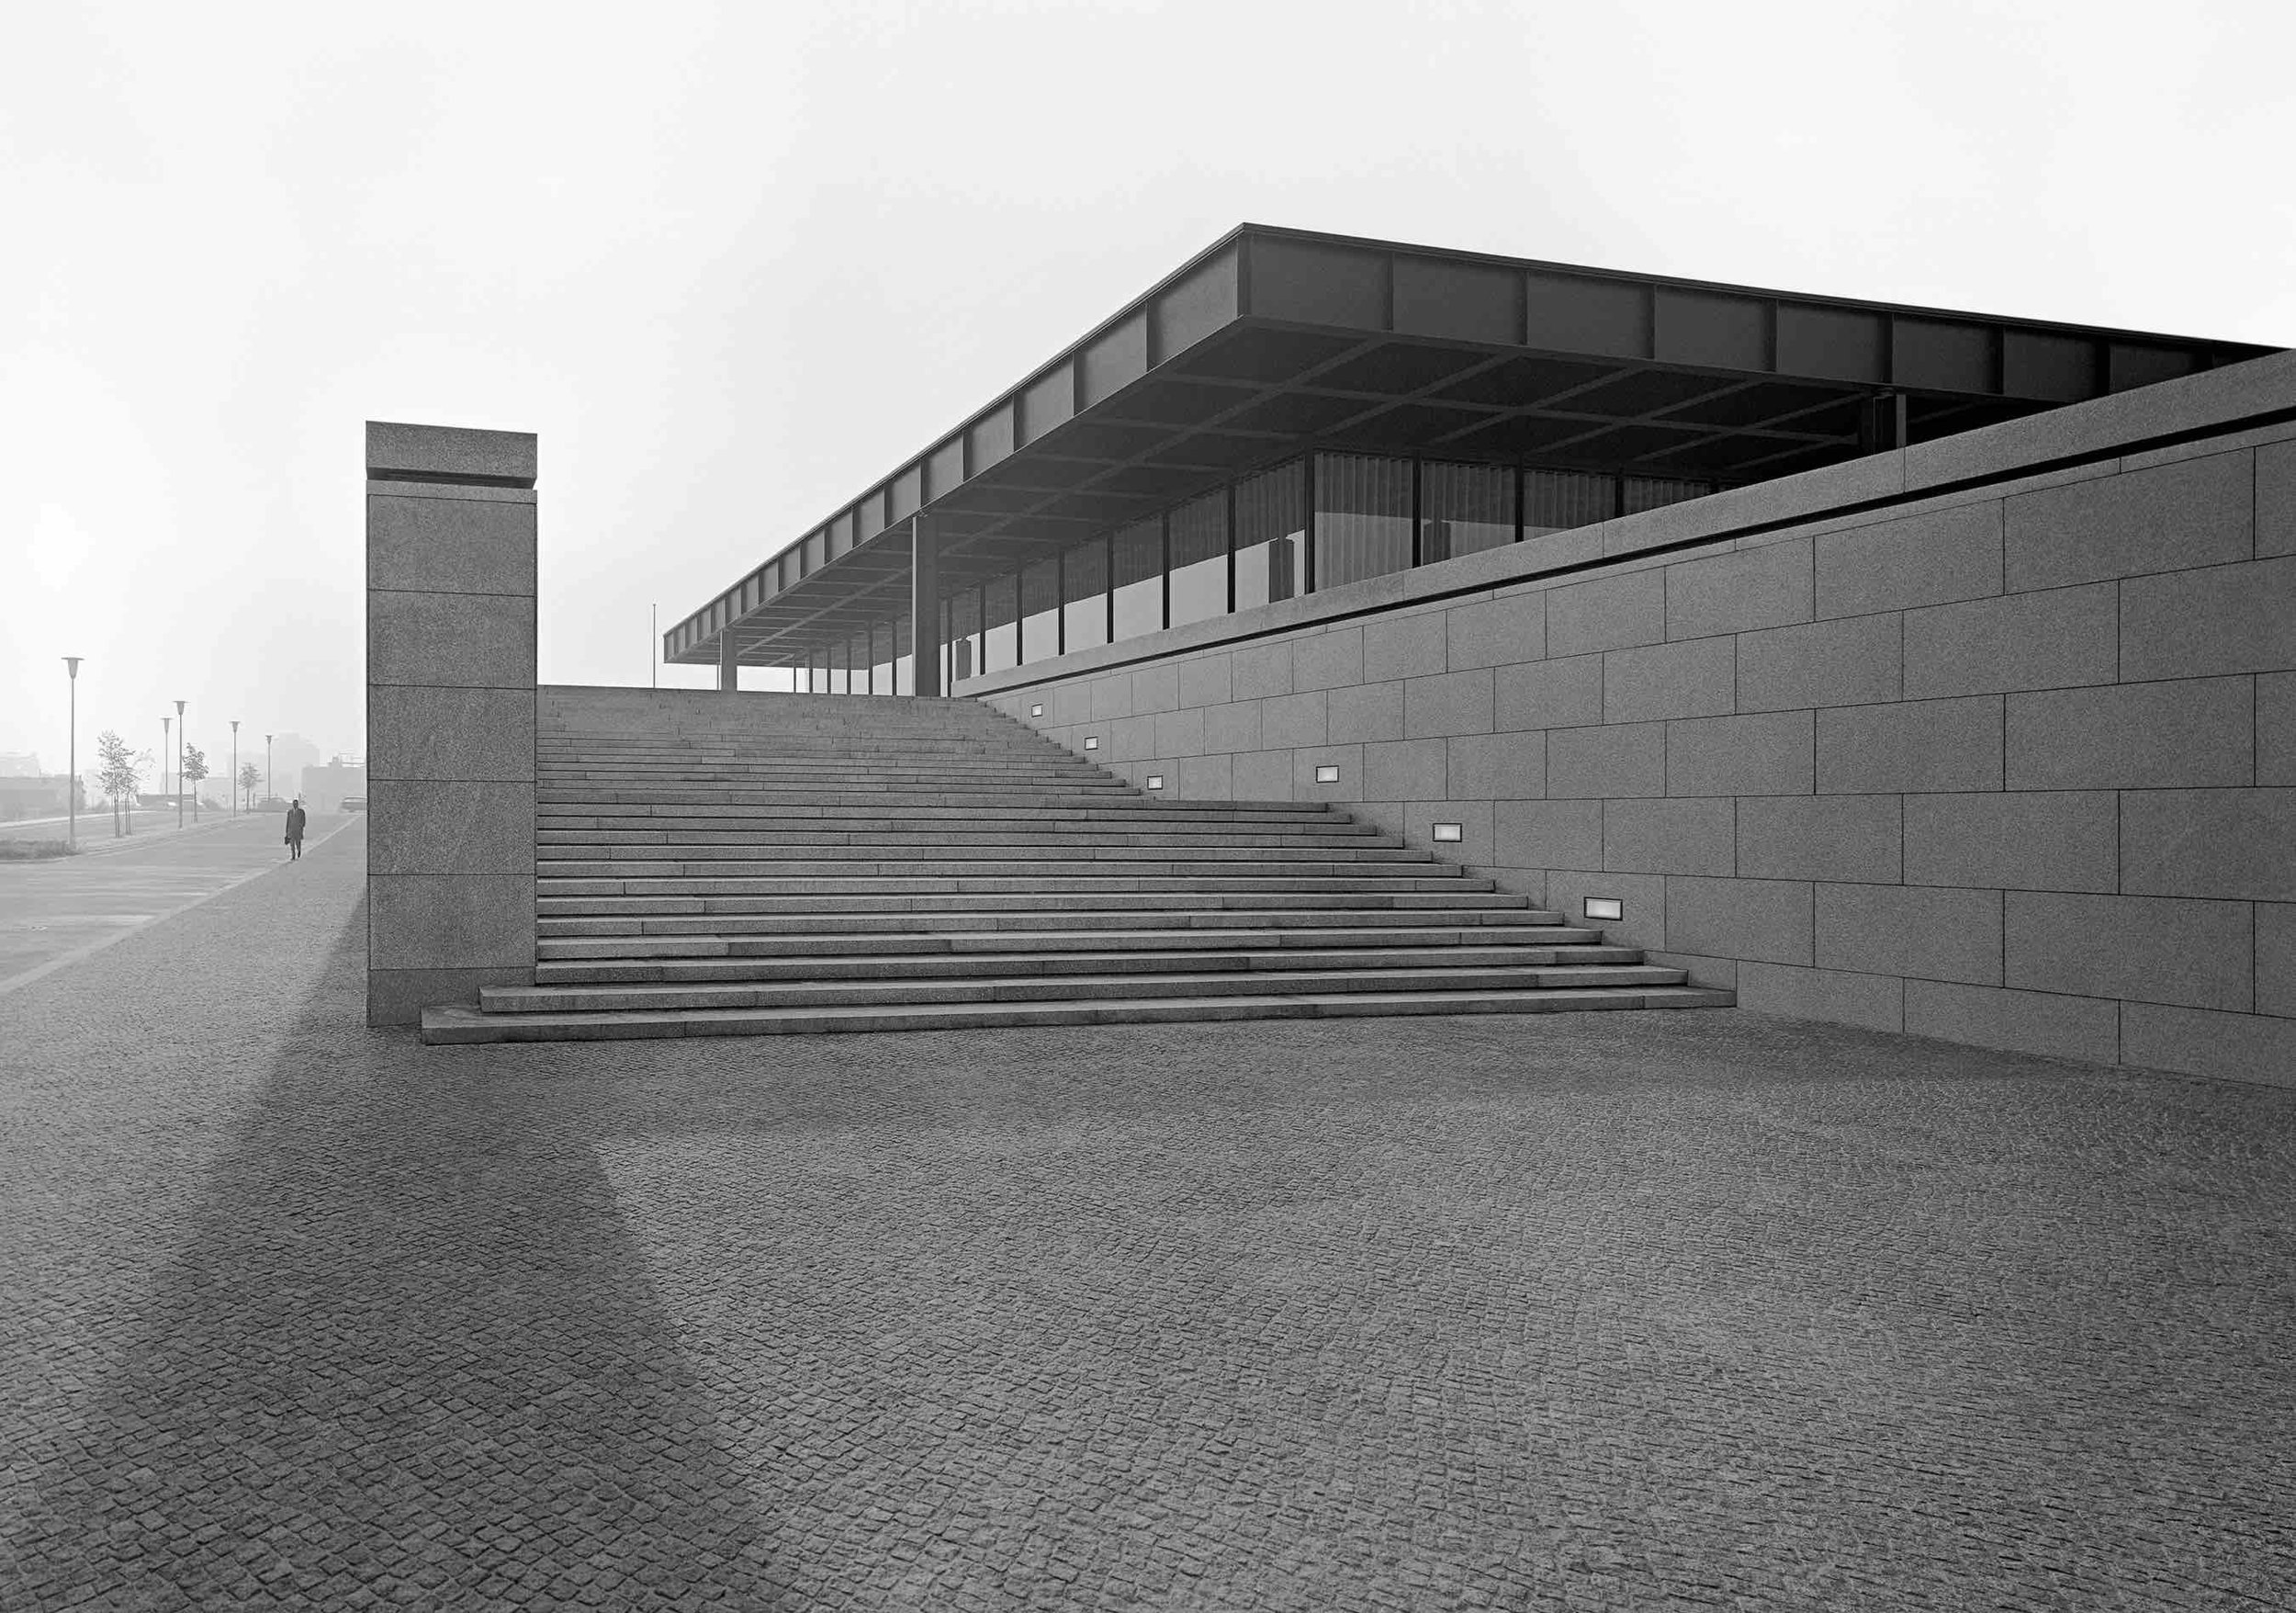 Ludwig Mies van der Rohe, Neue Nationalgalerie (Berlin, Germany) 1968